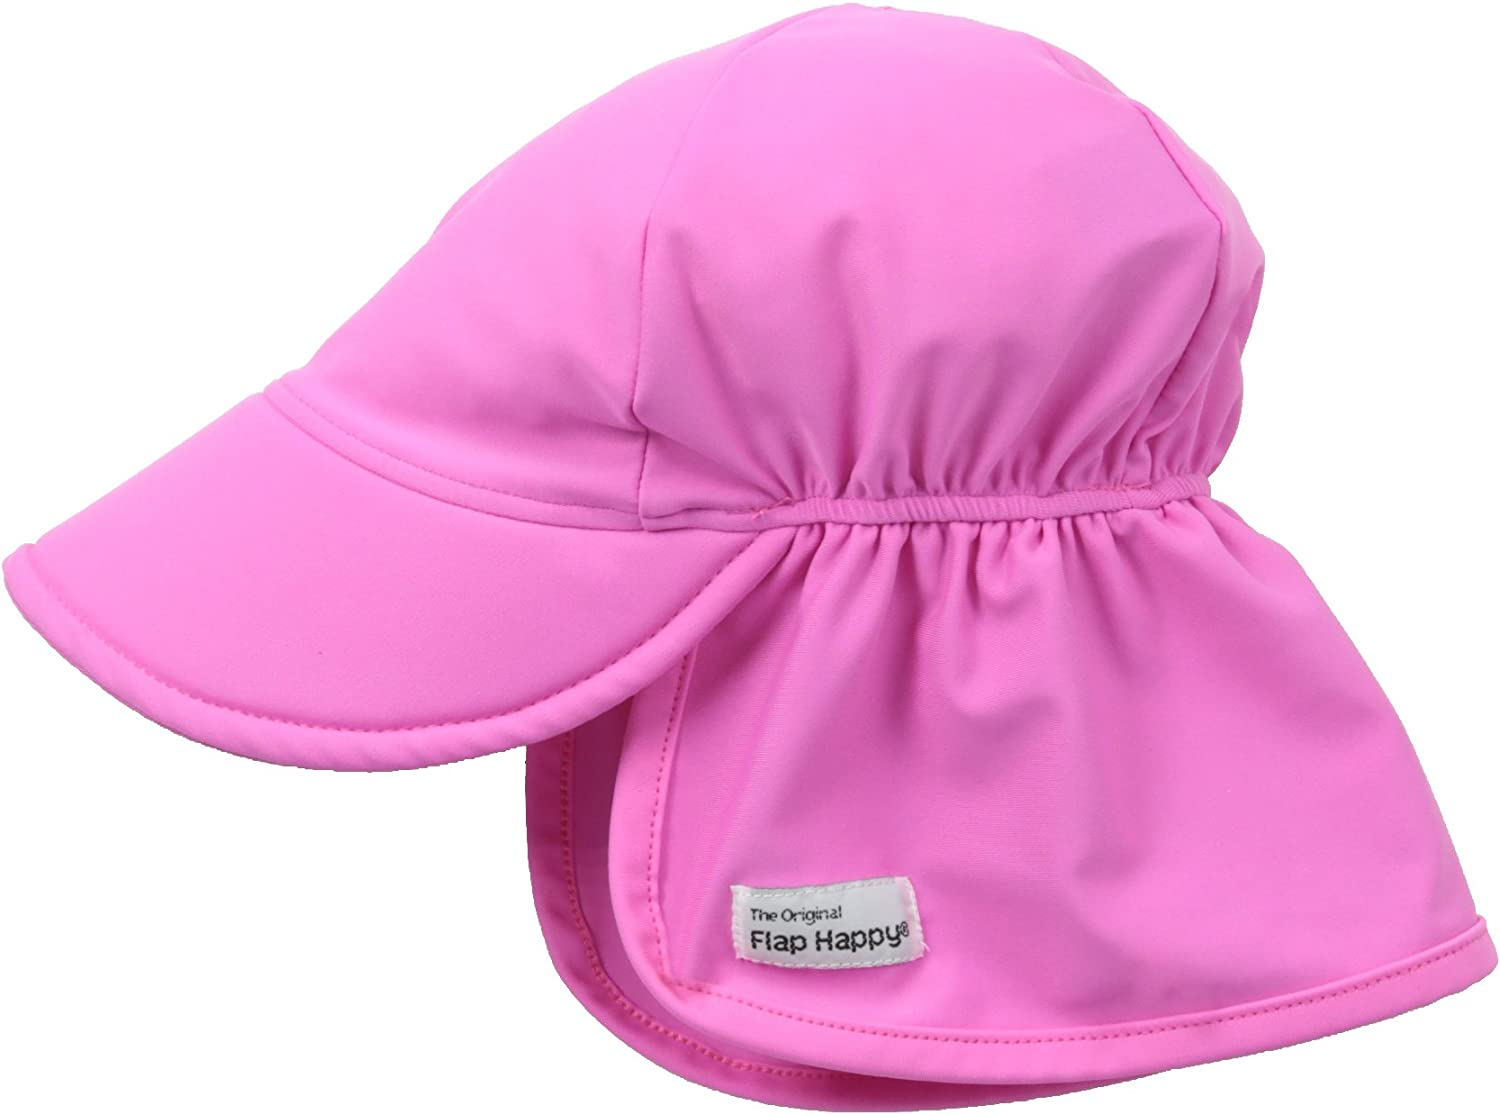 Azo-free dye Floats on Water Highest Certified UV Sun Protection Flap Happy Baby and Childrens Swim Flap Hat UPF 50+